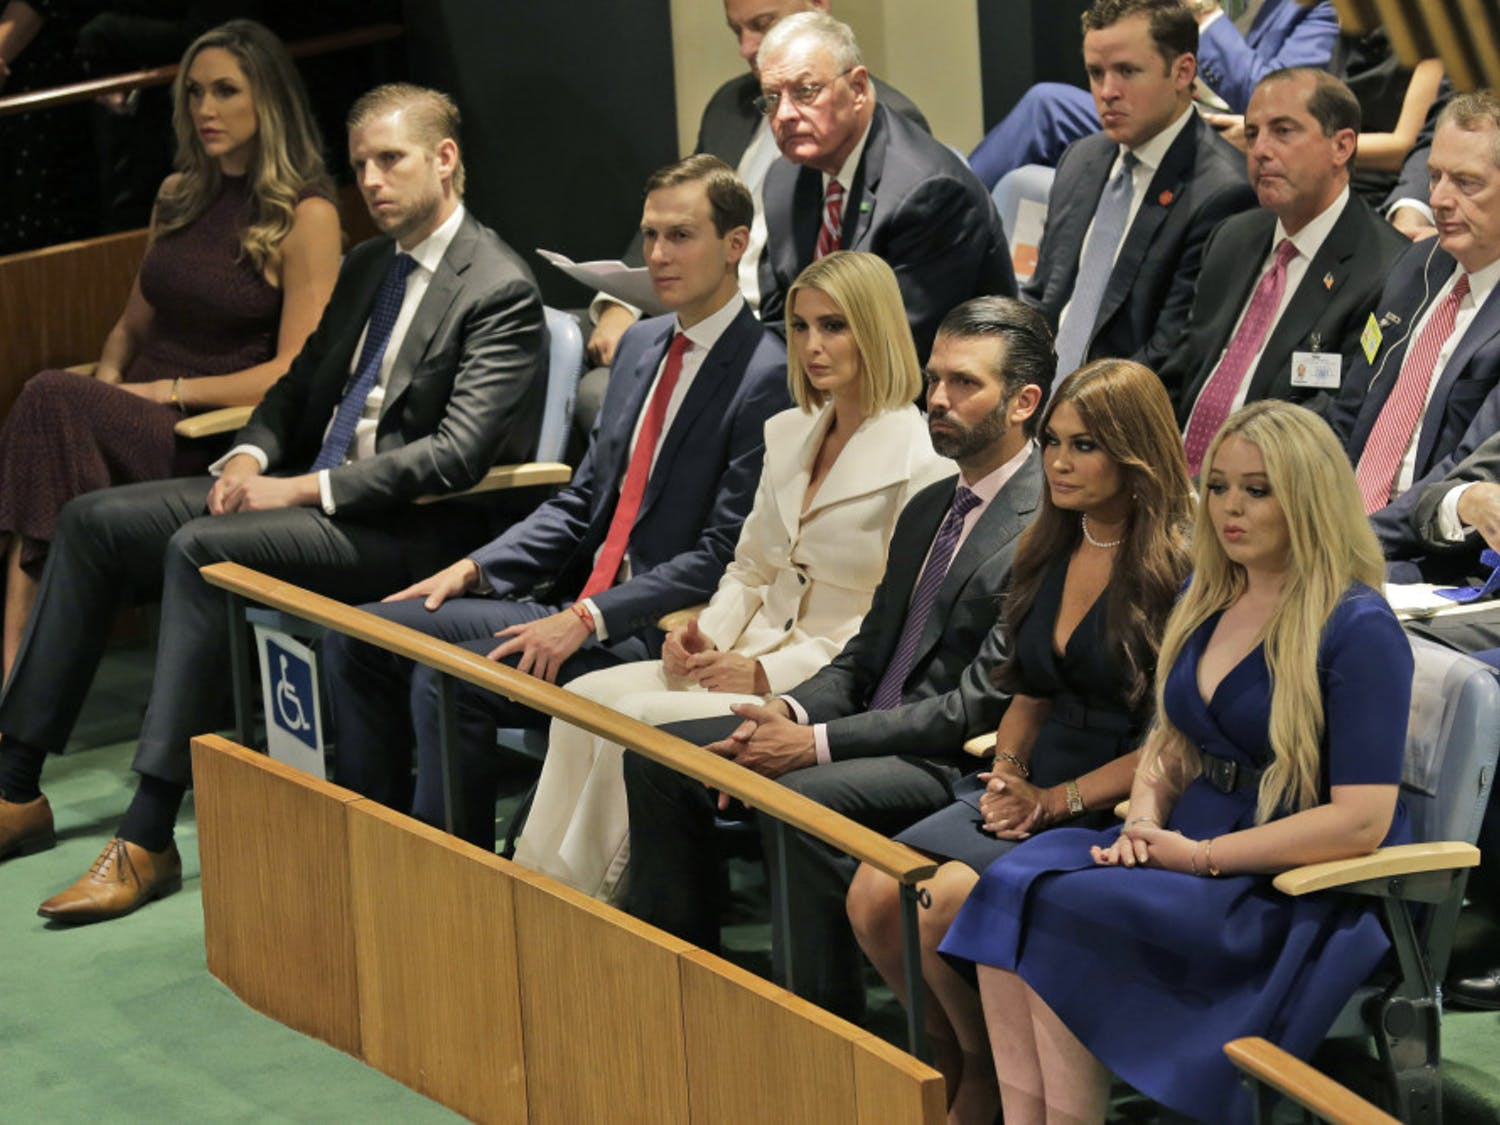 Members of U.S. President Donald Trump's family and others listen to him speak during the 74th session of the United Nations General Assembly at U.N. headquarters Tuesday, Sept. 24, 2019. From right to left, Tiffany Trump, Kimberly Guilfoyle, Donald Trump Jr., Ivanka Trump, Jared Kushner, Eric Trump and Lara Trump. (AP Photo/Seth Wenig)